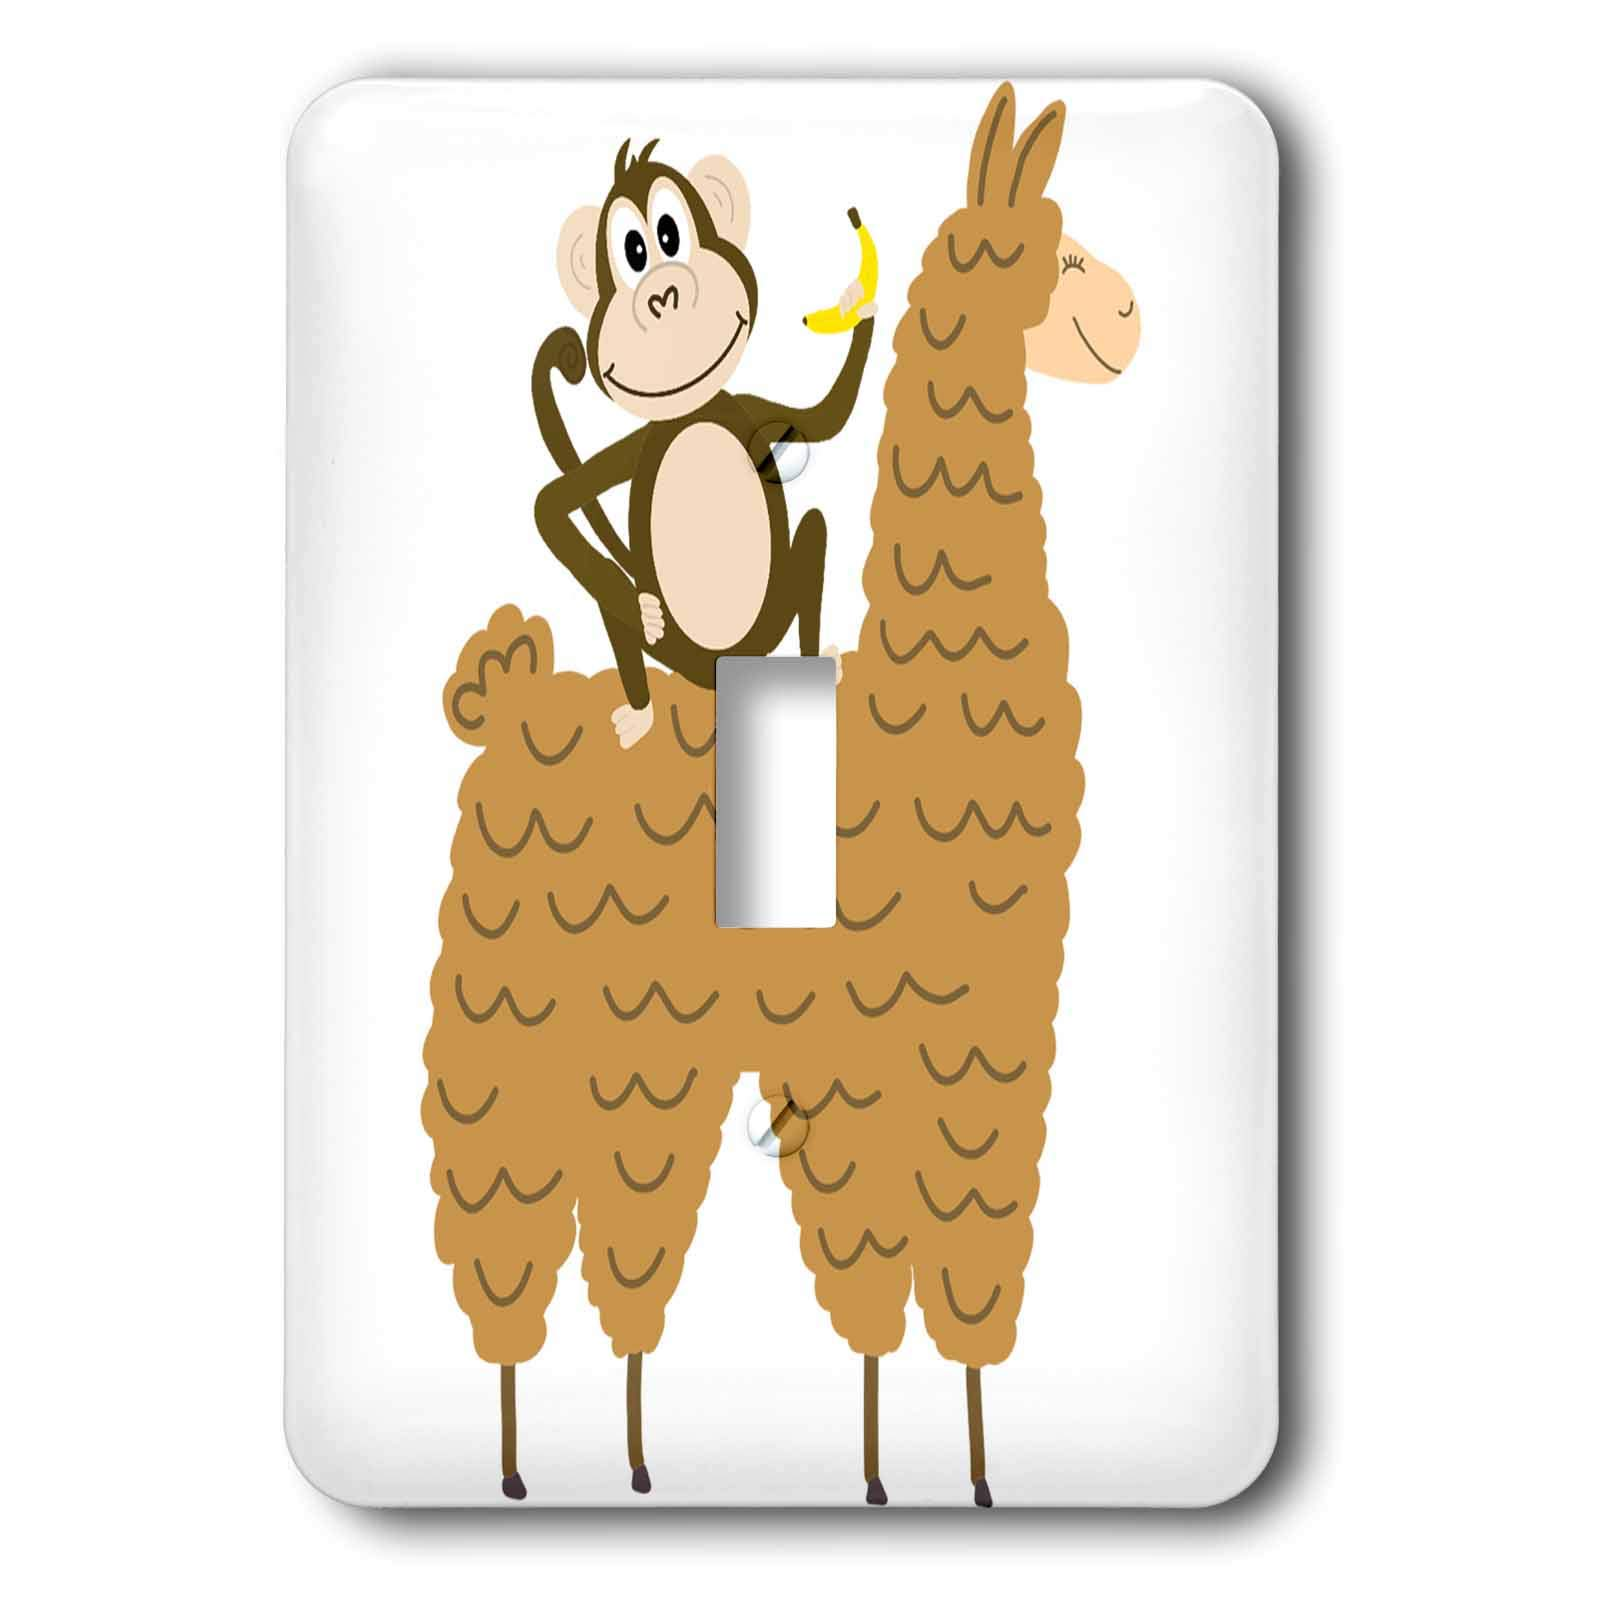 3dRose AllSouthernDesignTees - Zoo Animals - Funny cool monkey eating a banana and riding a llama - Light Switch Covers - single toggle switch (lsp_290656_1) by 3dRose